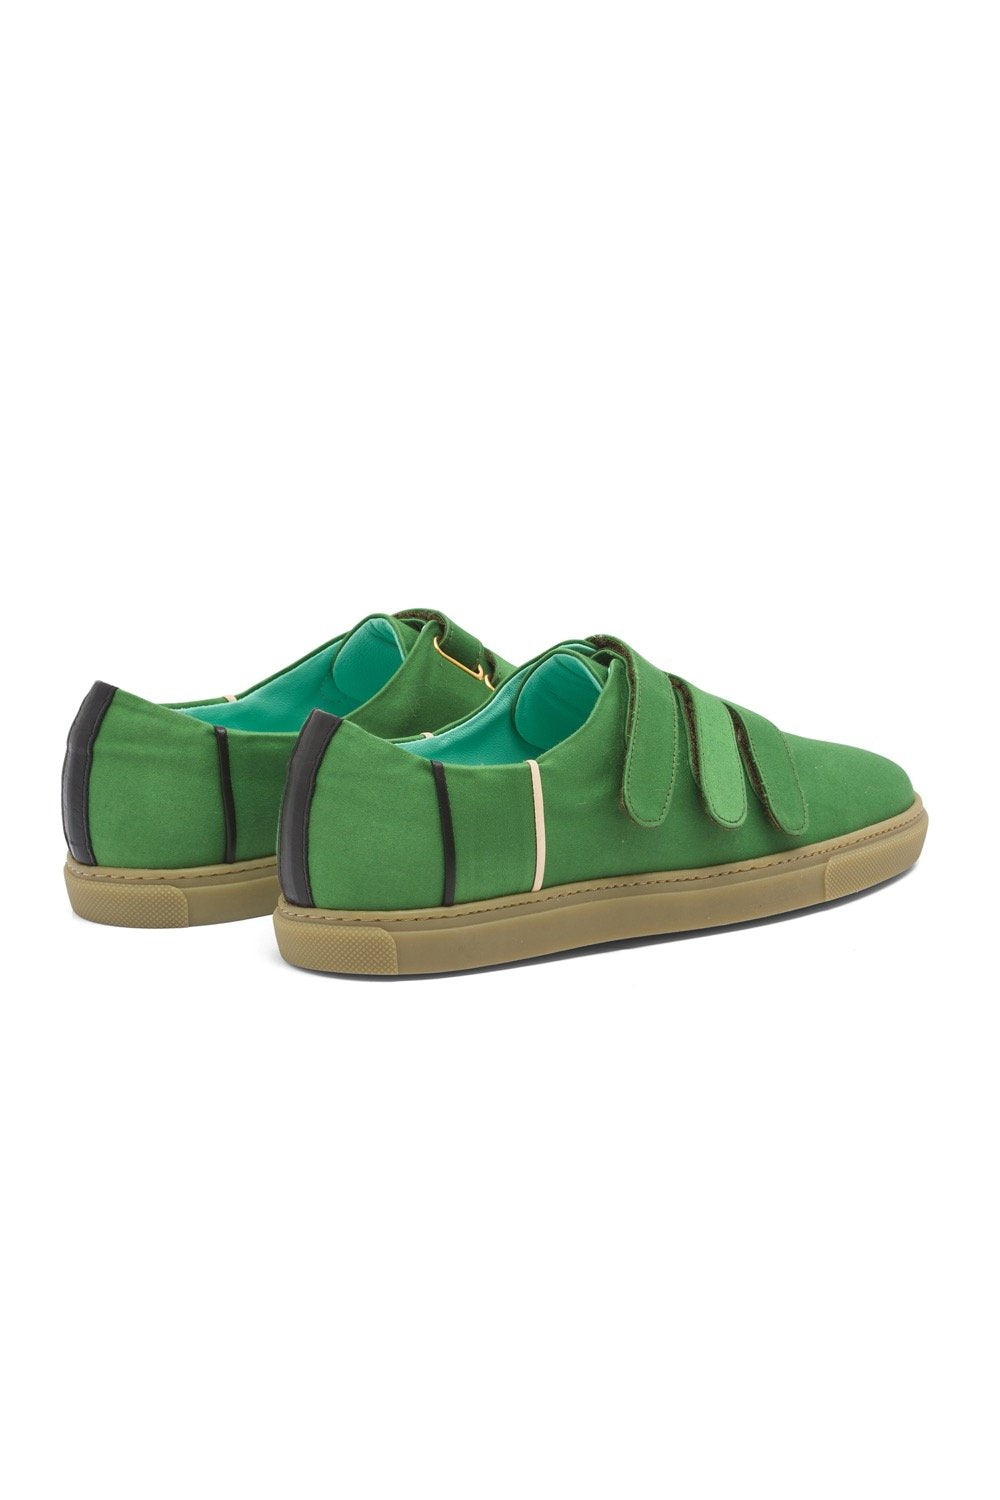 Sneakers in green canvas